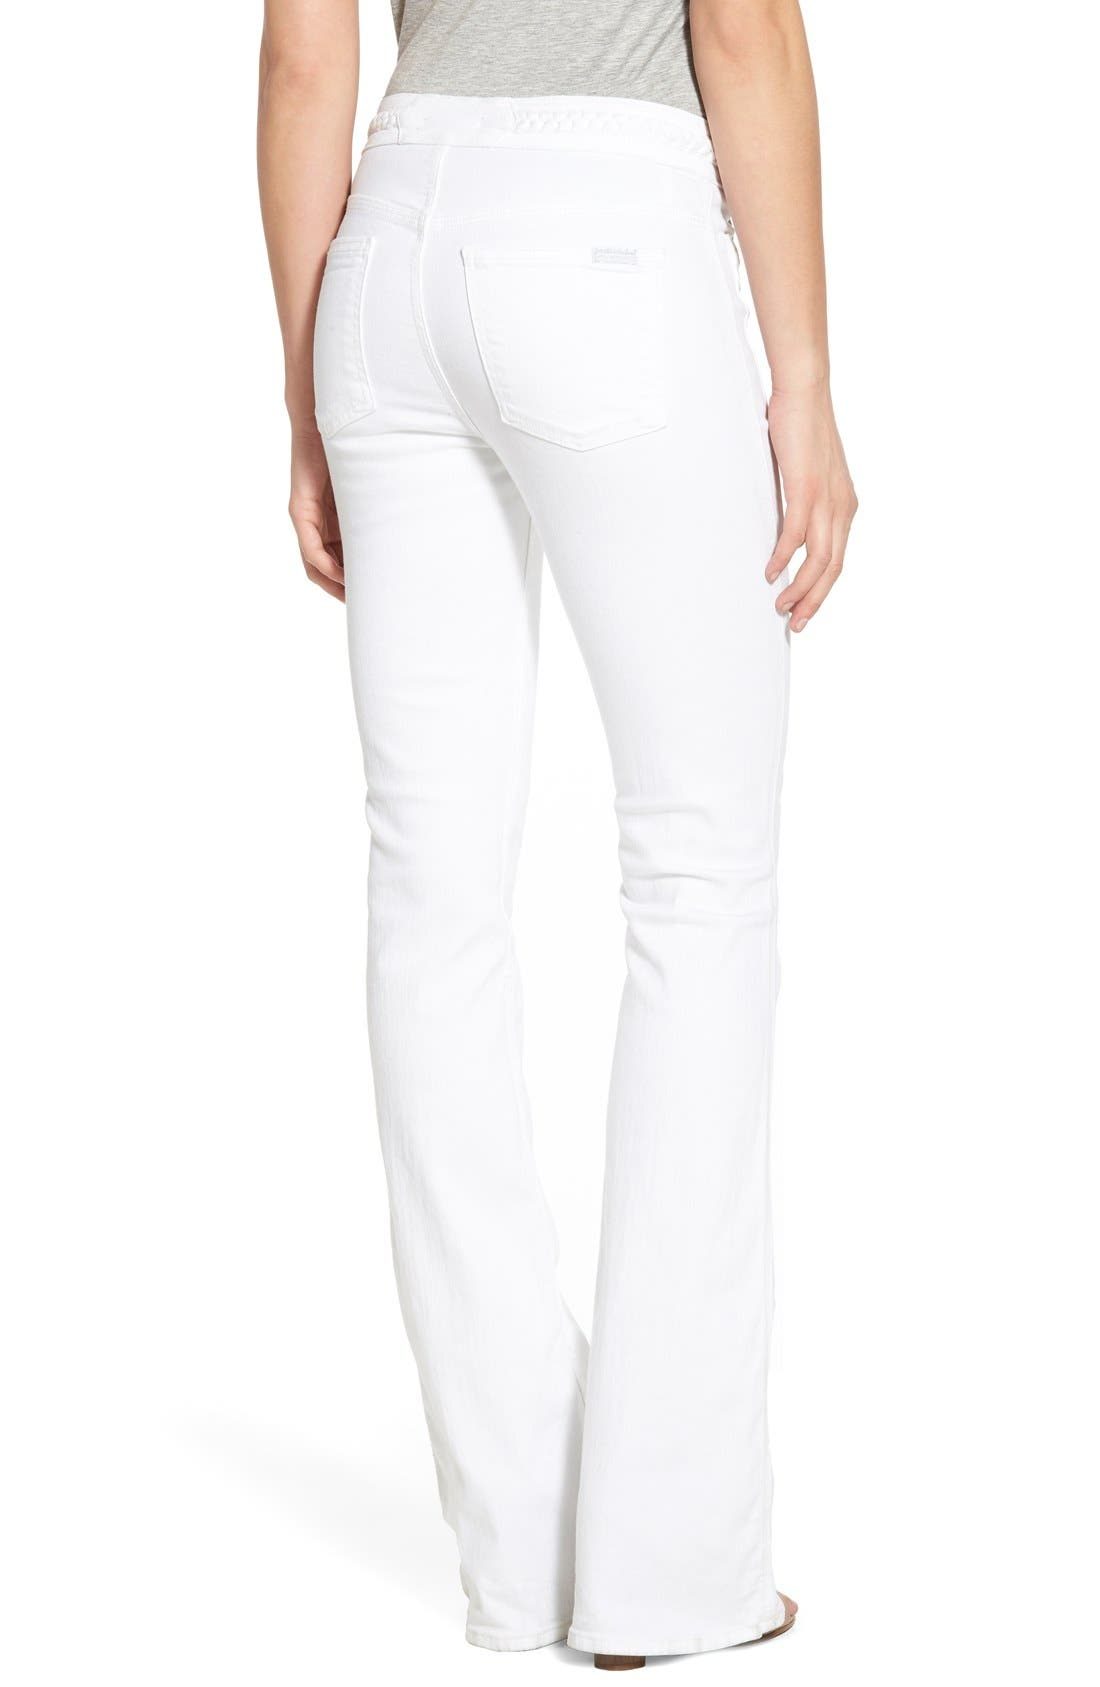 Alternate Image 2  - 7 For All Mankind® High Rise Braided Trim Flare Jeans (White Fashion)